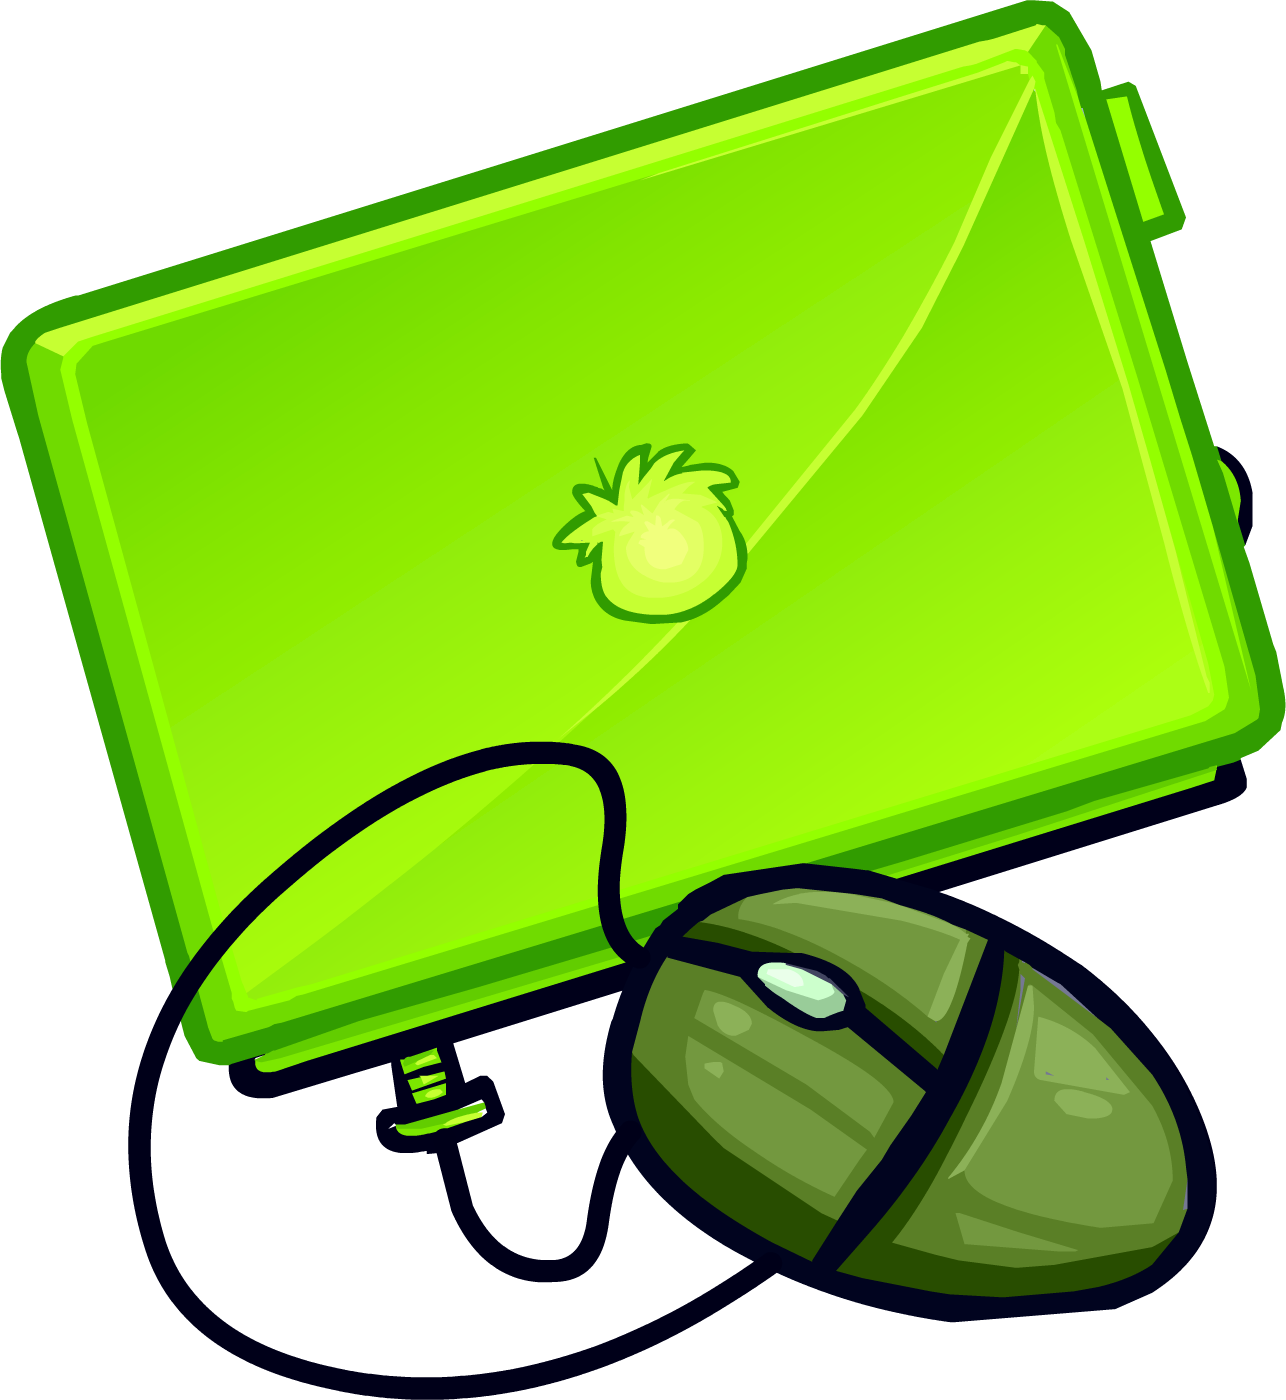 Notebook clipart green notebook. Lime laptop club penguin